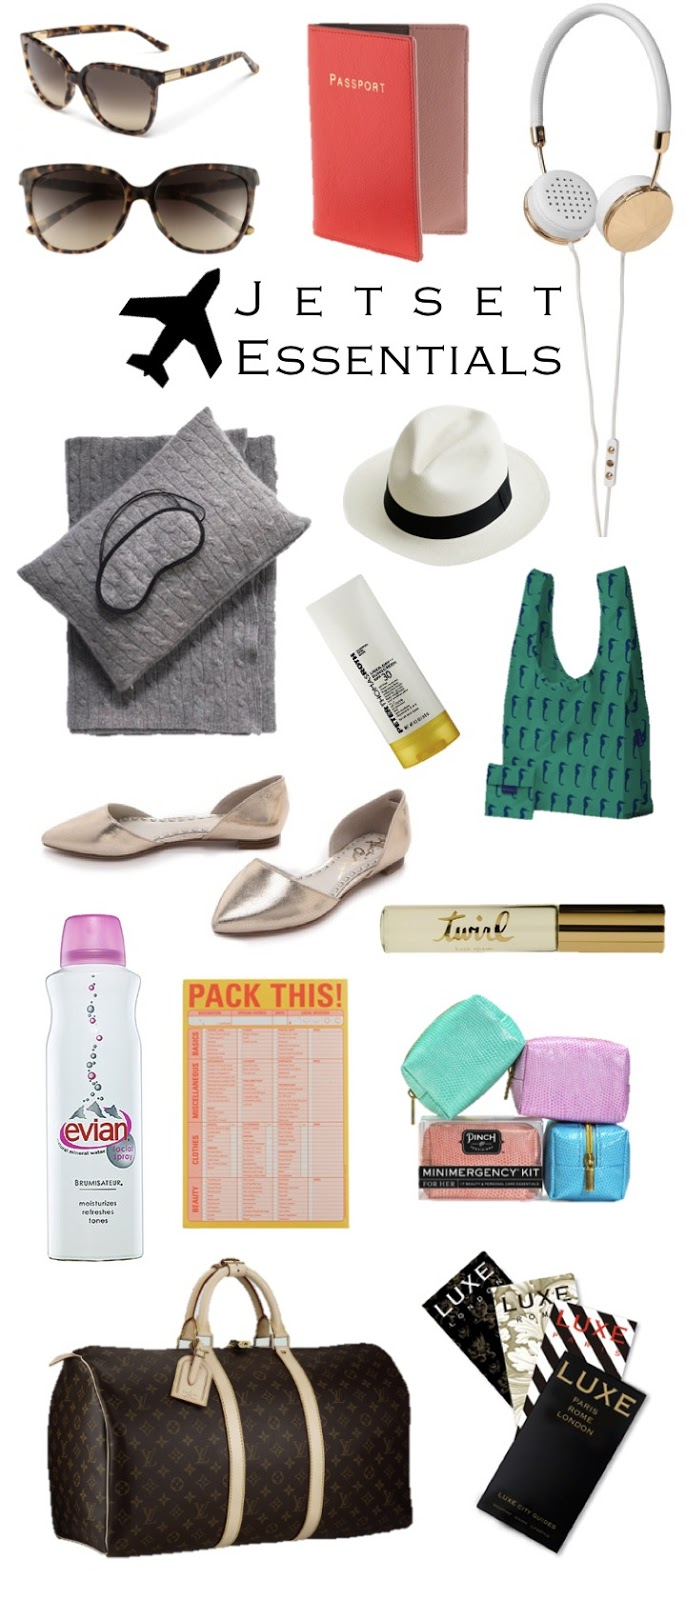 luxe travel essentials